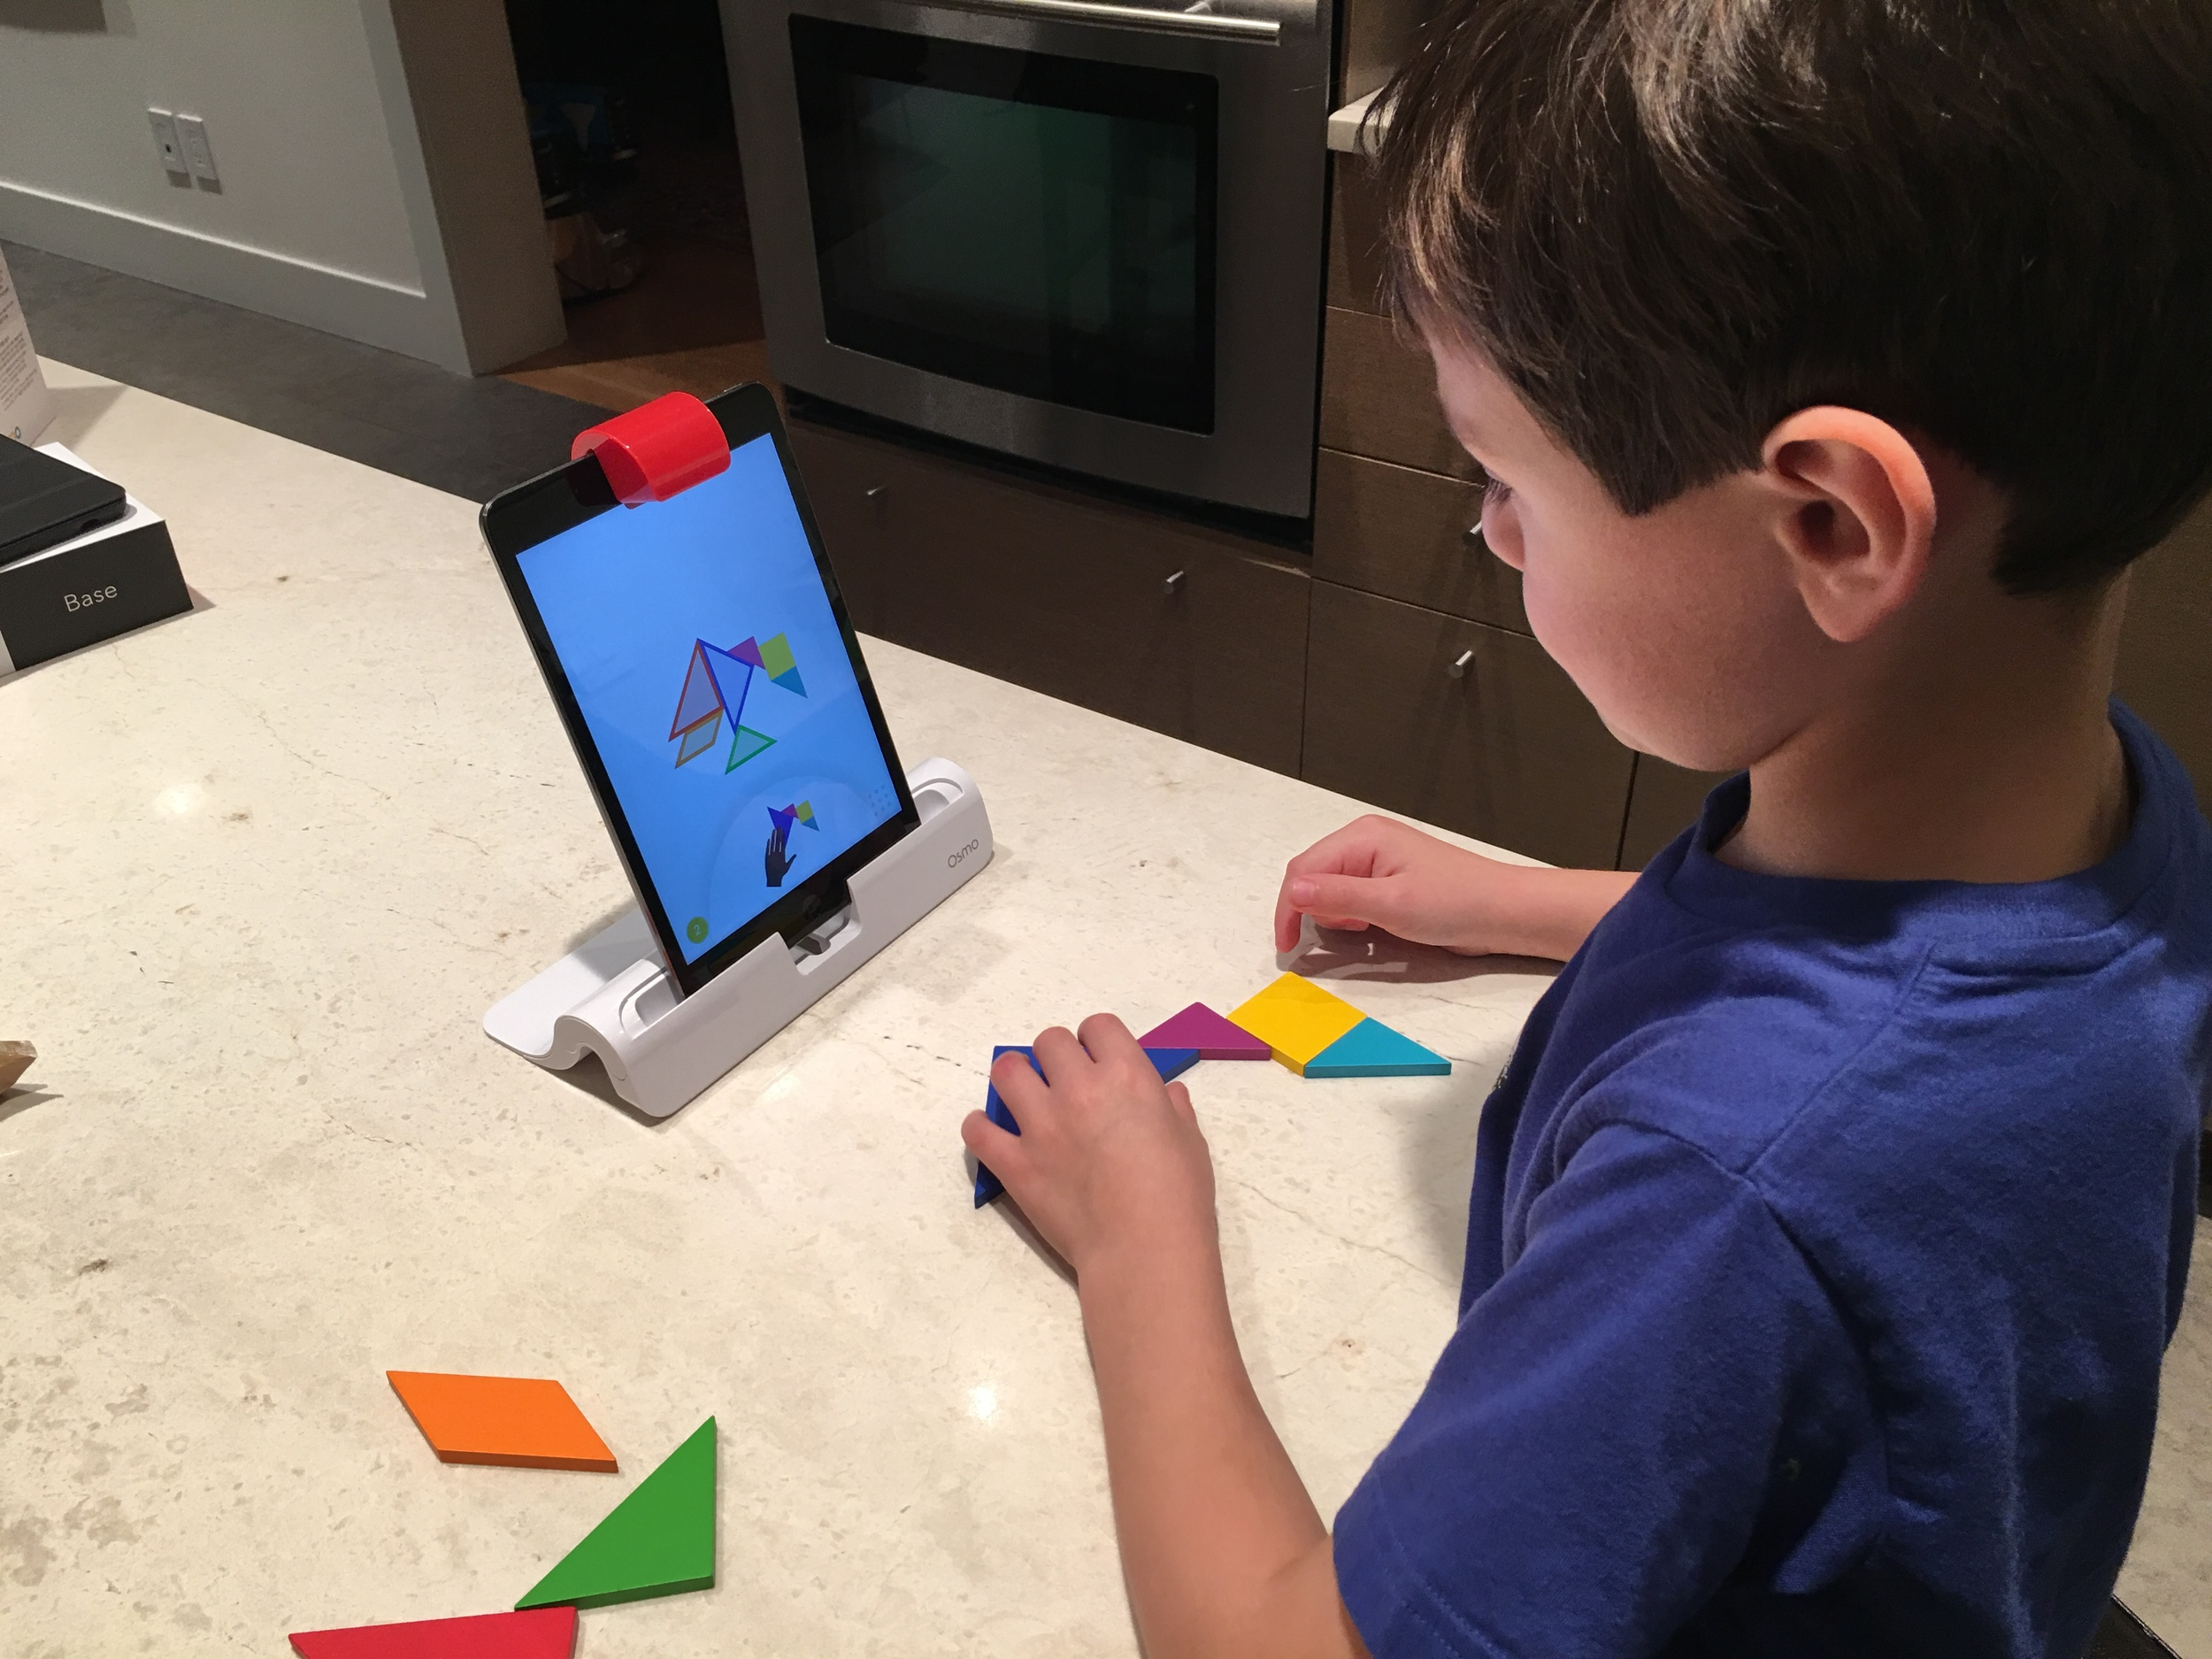 Our 5 year old playing tangram